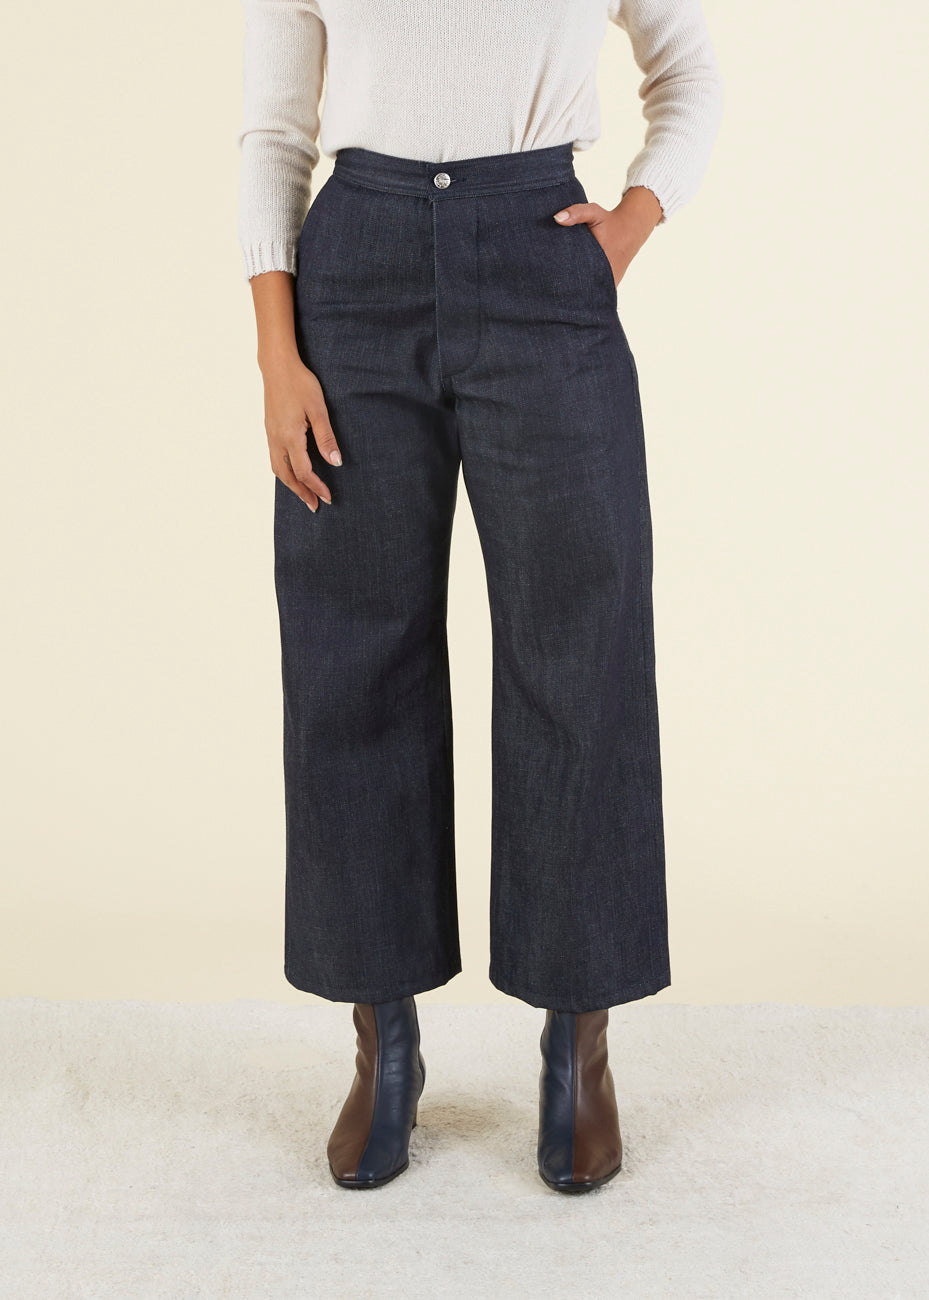 Selvage Indigo Sailor Pant